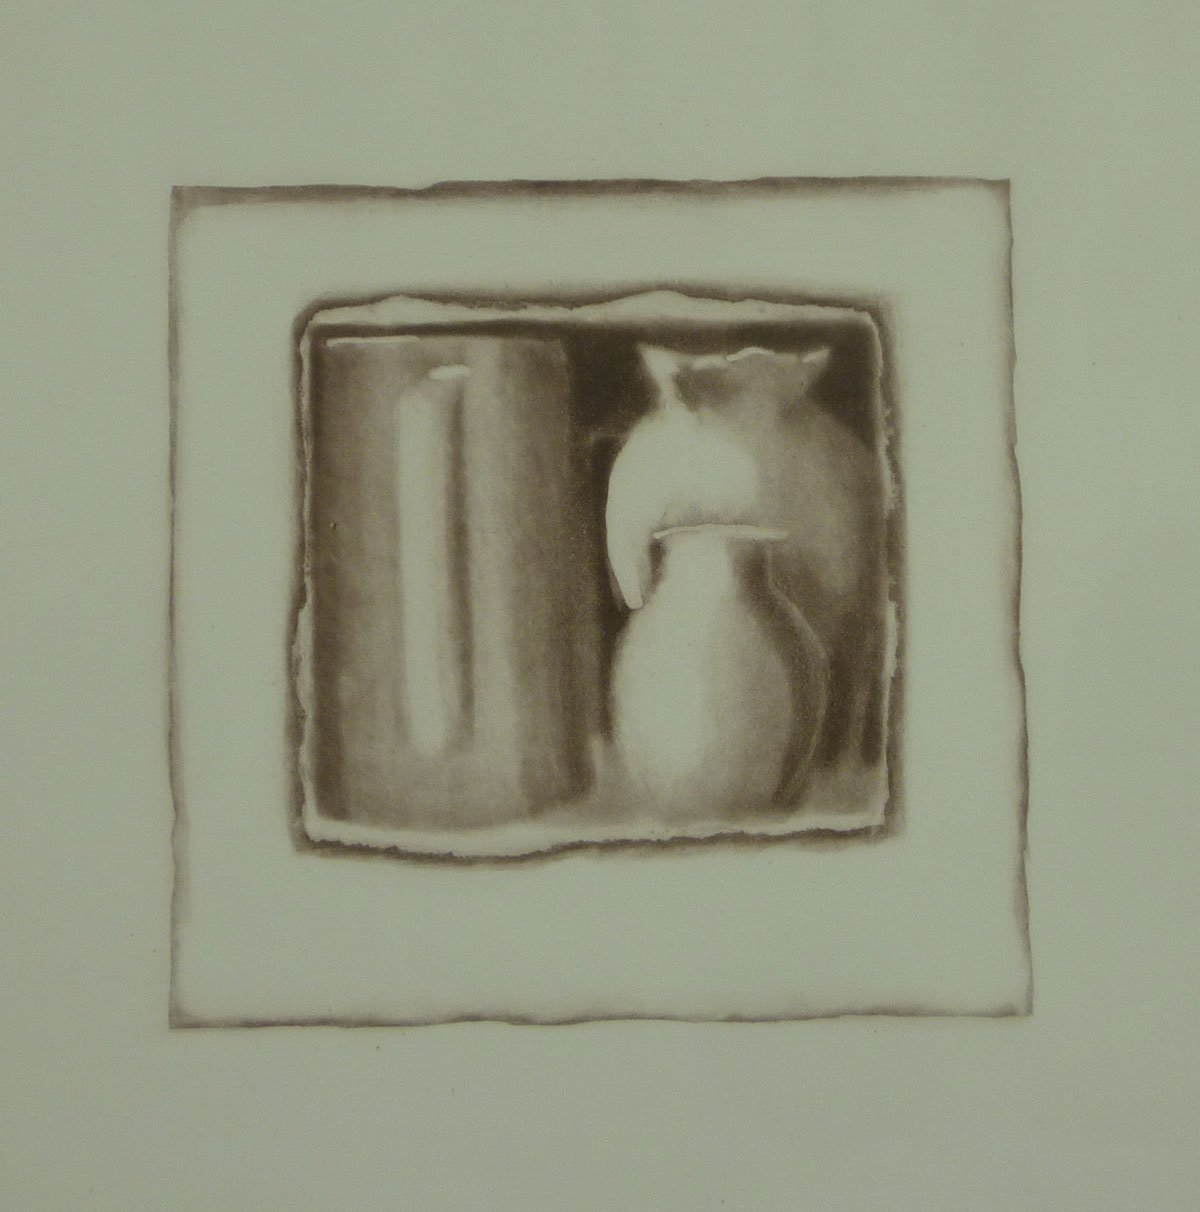 Print-22-Still-Life-(3-objects-in-frame)-1972